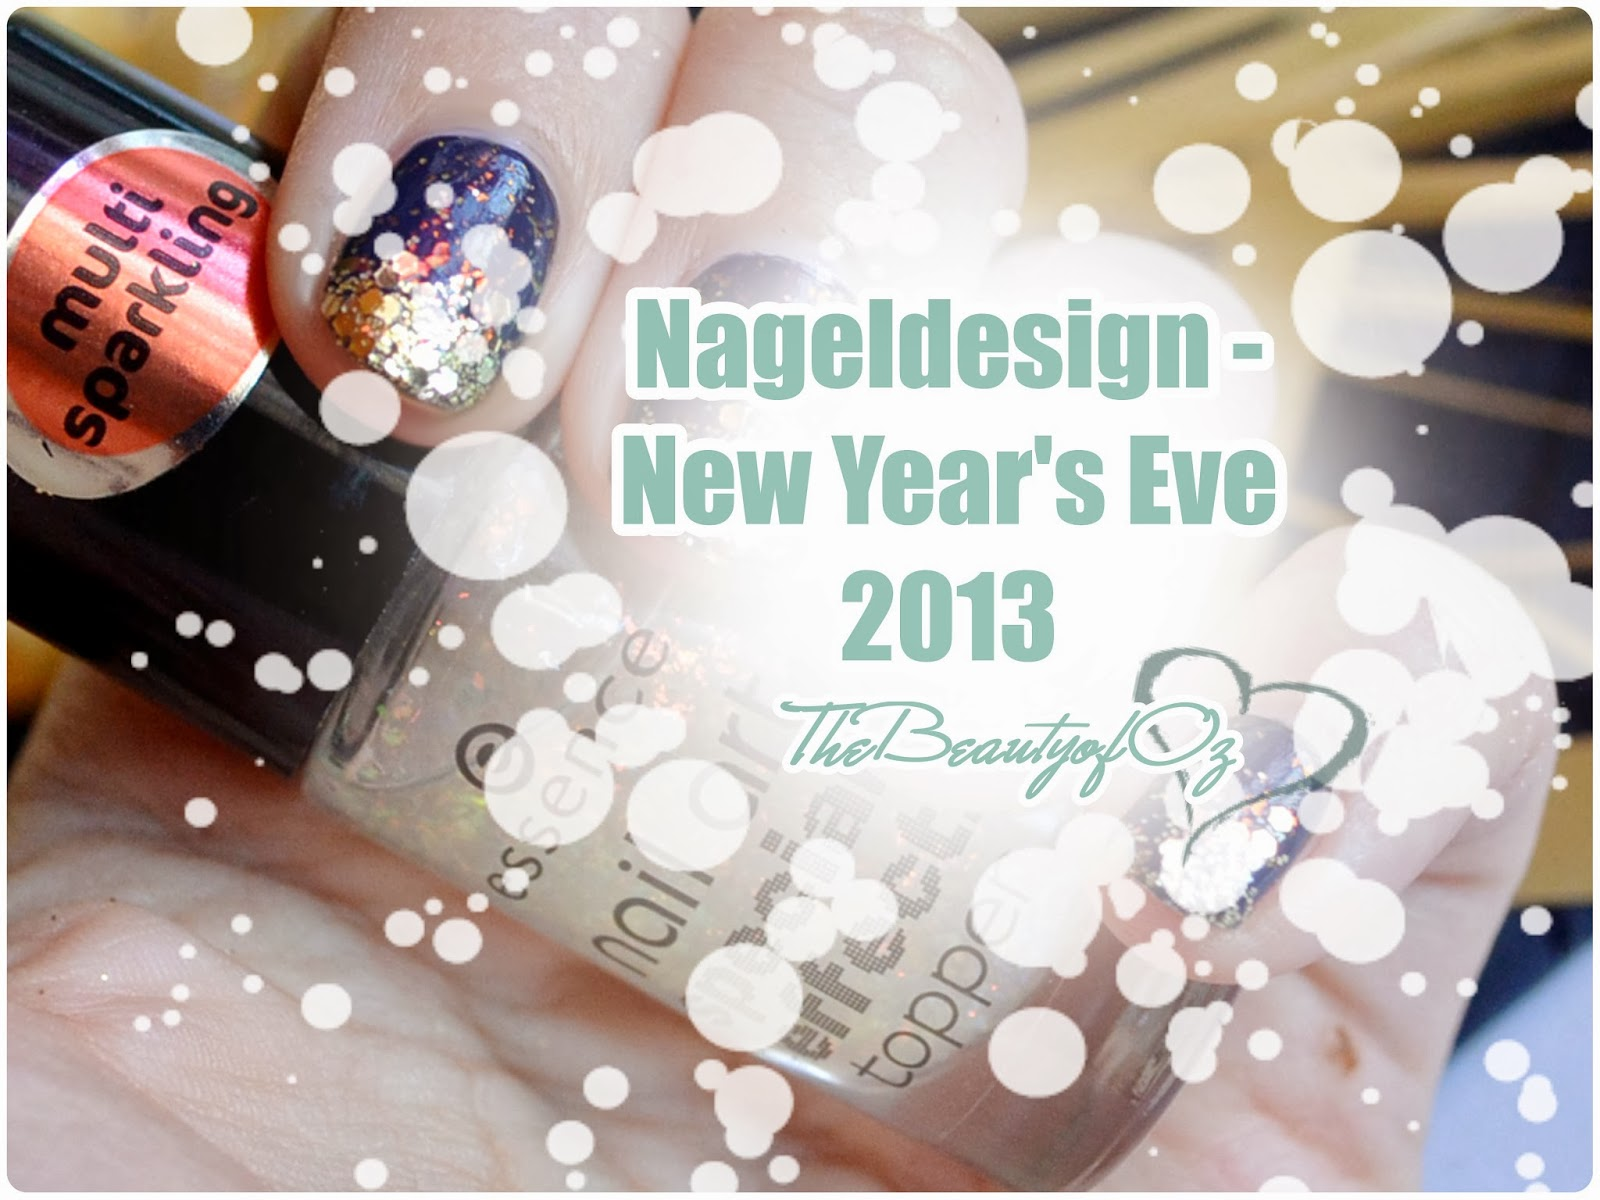 Nageldesign Silvester WELL PREPARED FOR NEW YEAR'S EVE